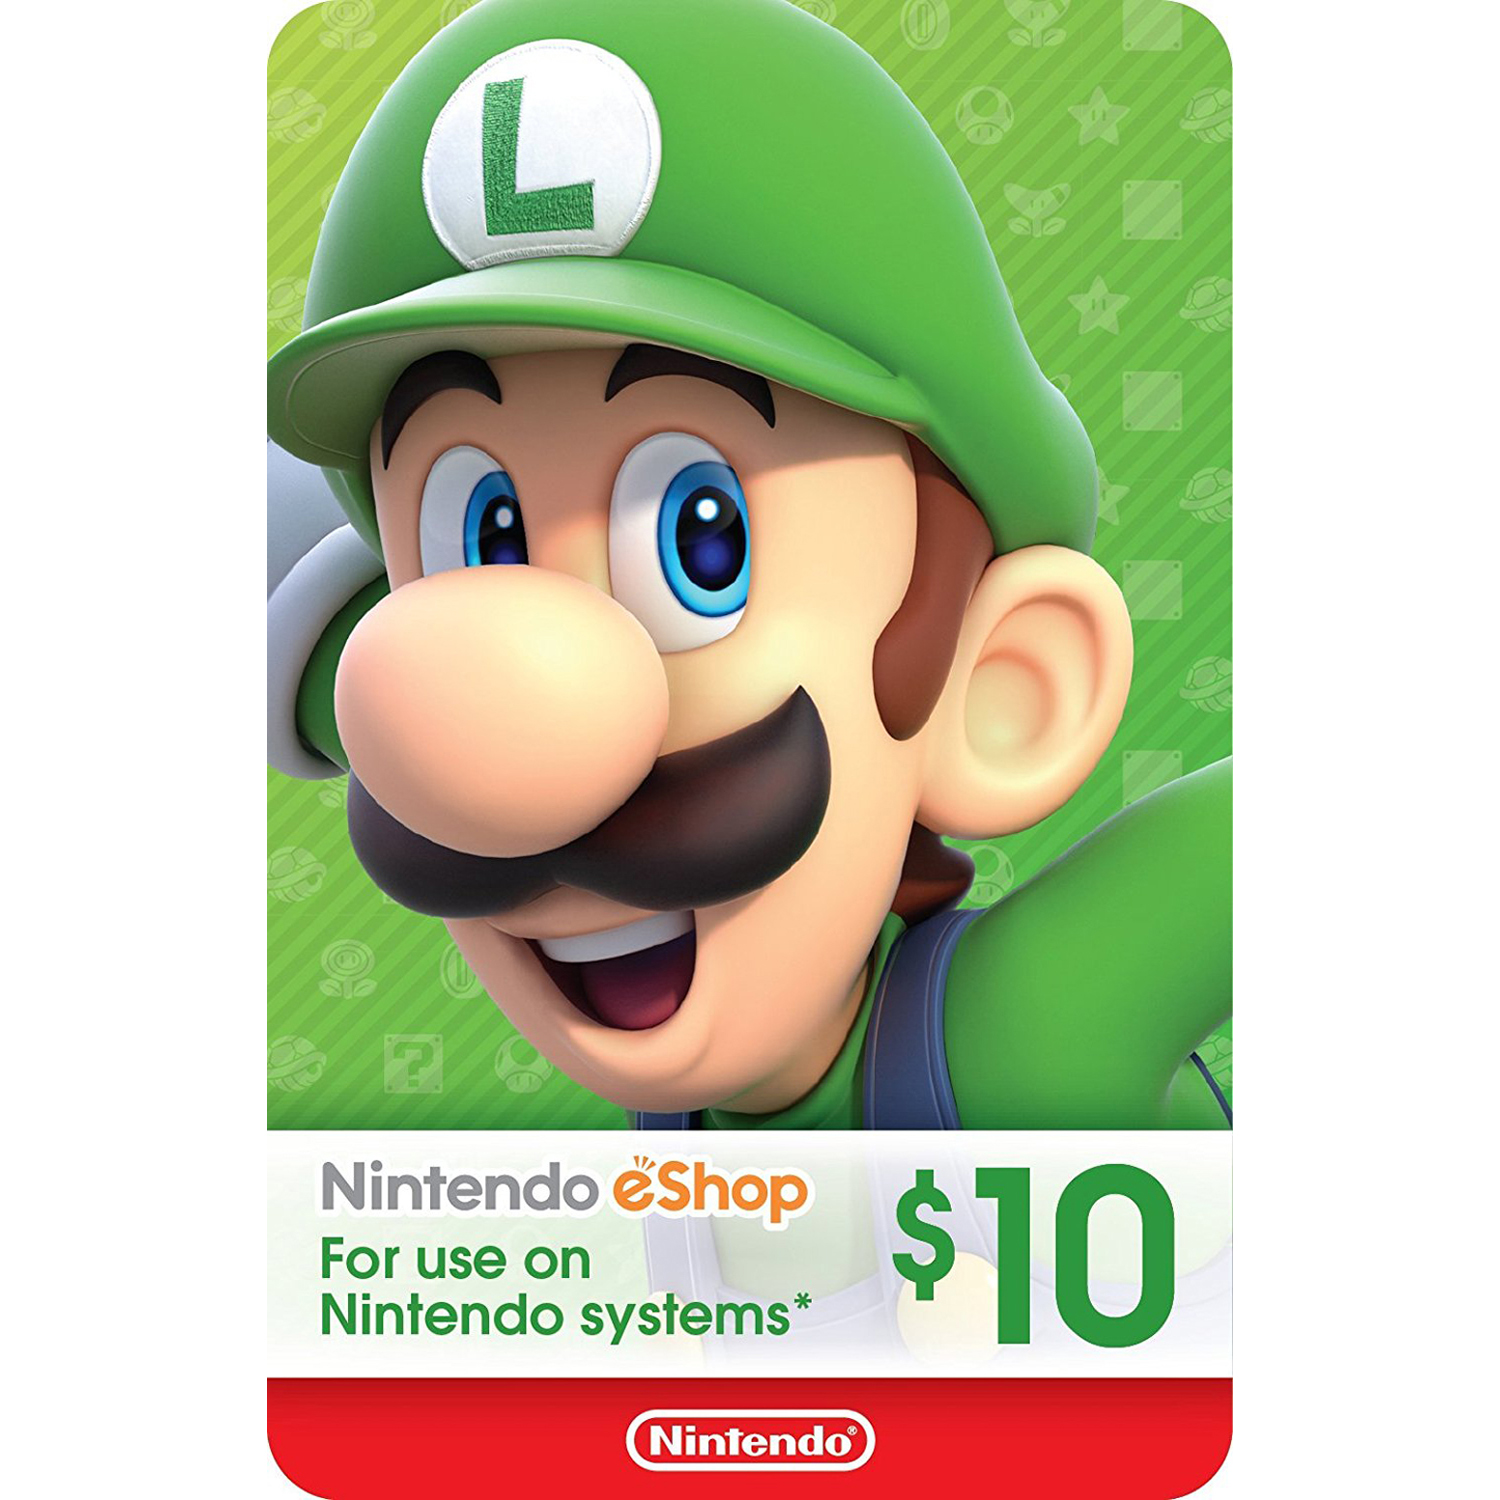 eCash - Nintendo eShop Gift Card $10 (Digital Download)